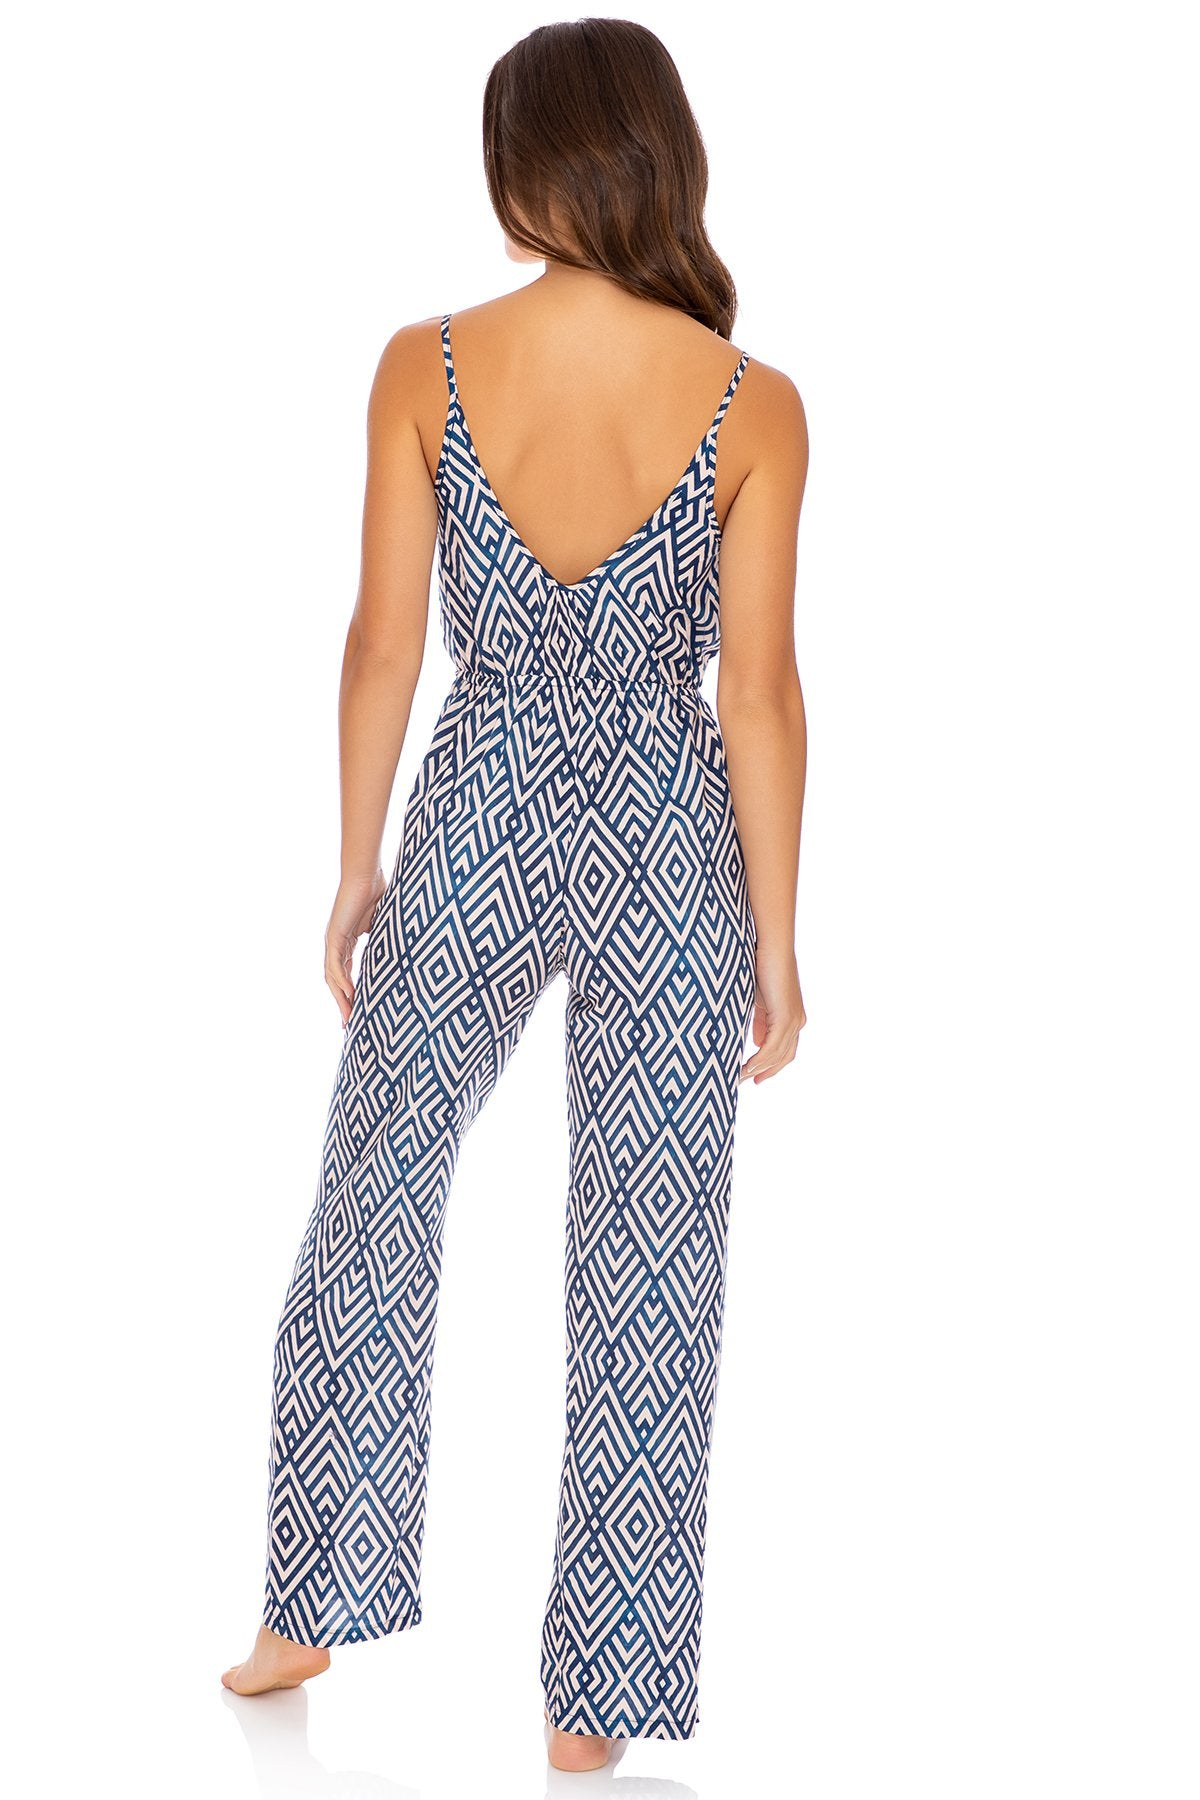 MESMERIZED - Jumpsuit • Multicolor